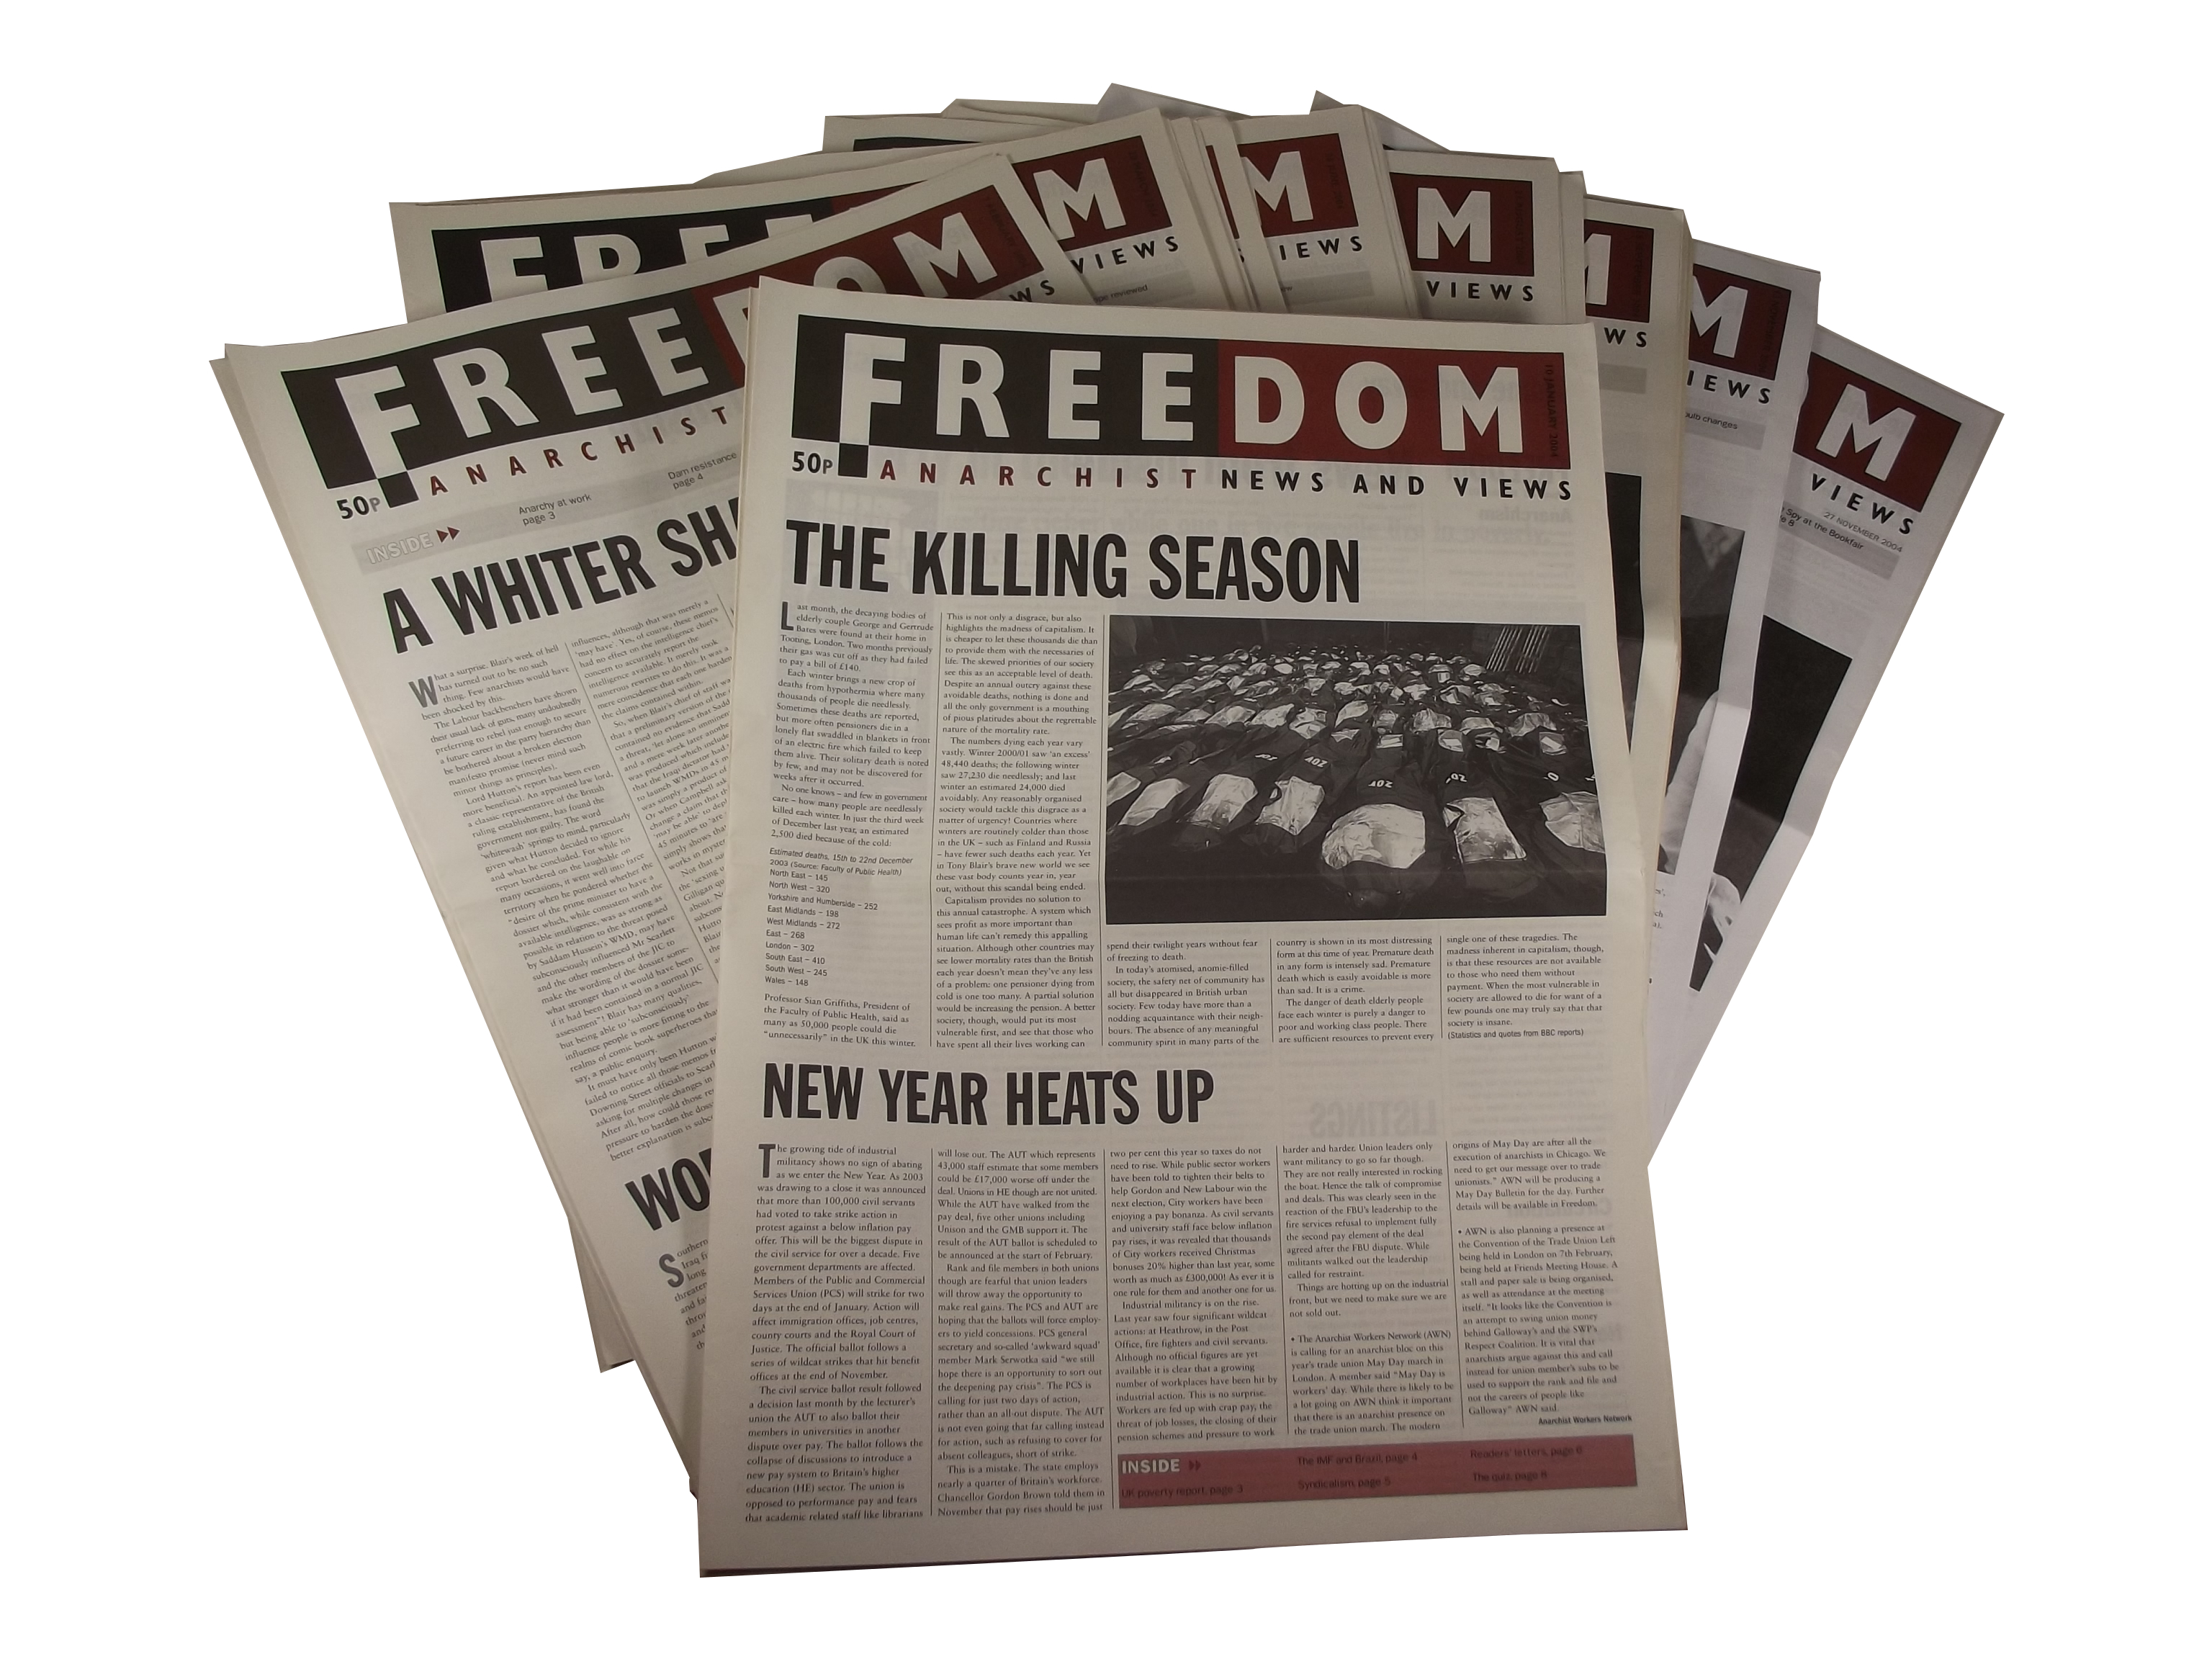 freedom newspaper